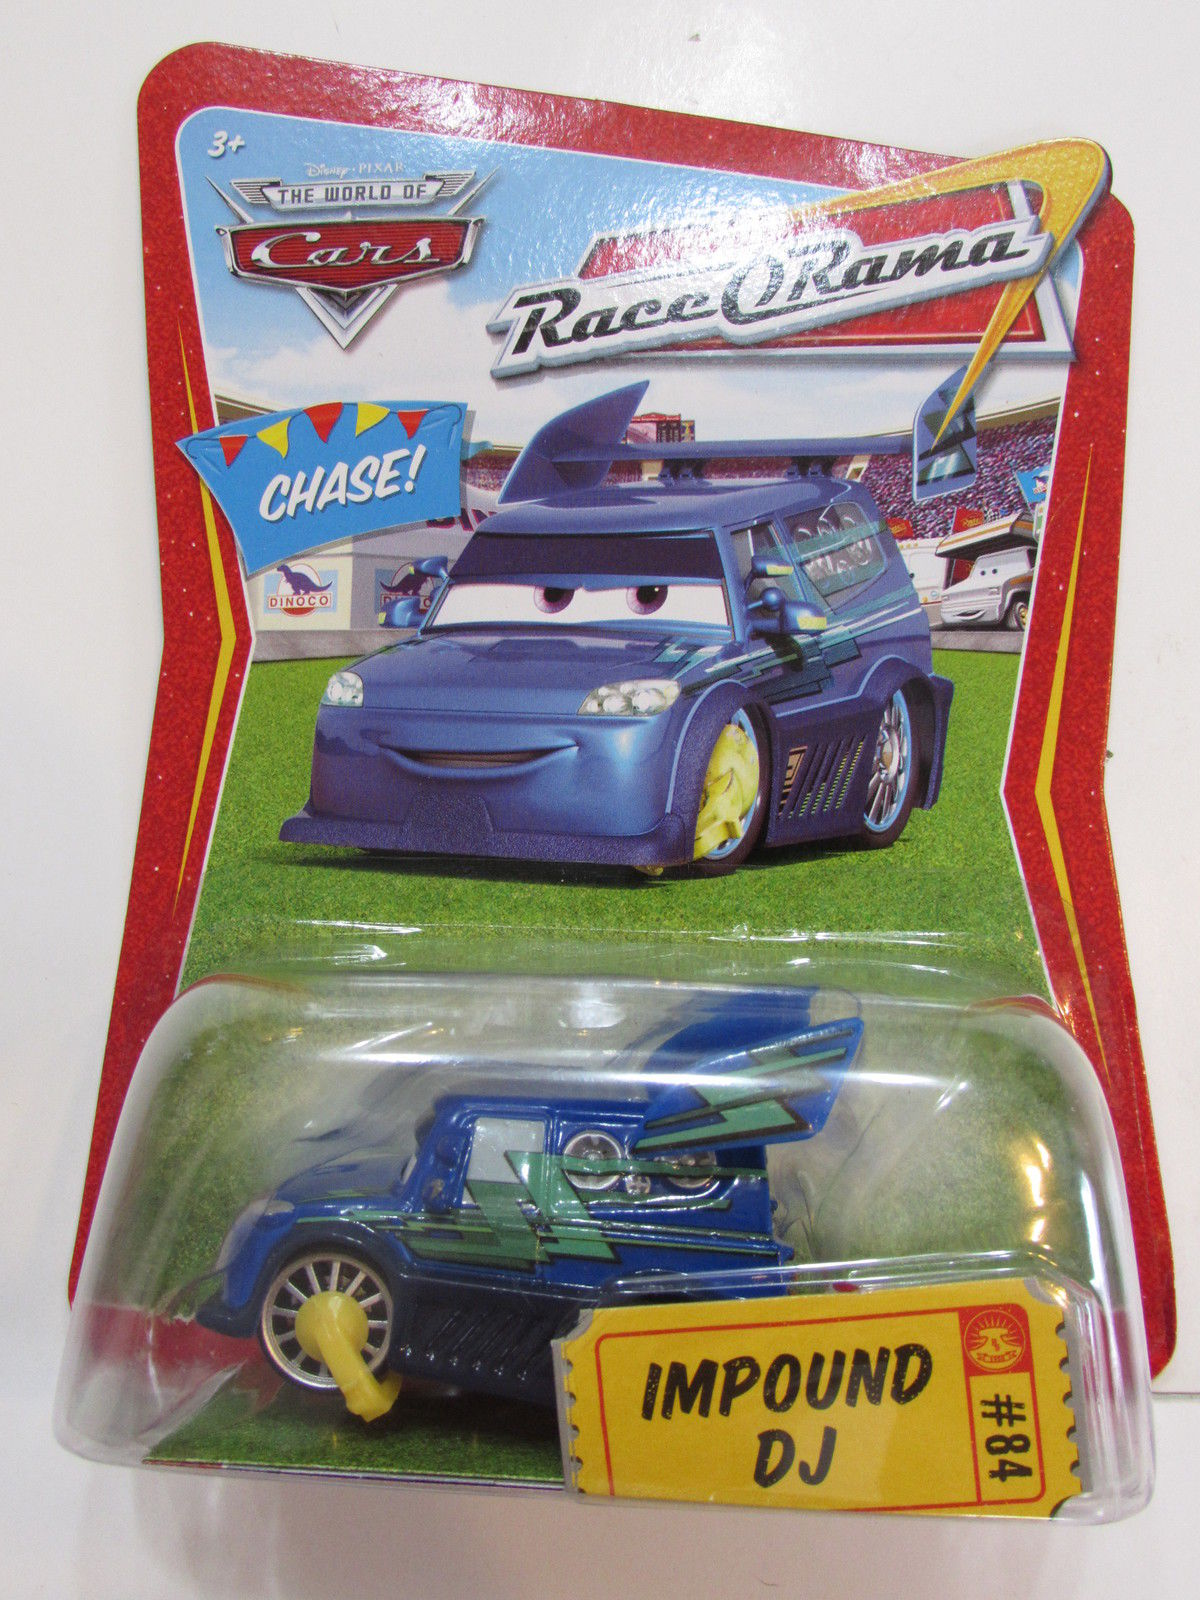 DISNEY PIXAR THE WORLD OF CARS CHASE RACE O RAMA - IMPOUND DJ #84